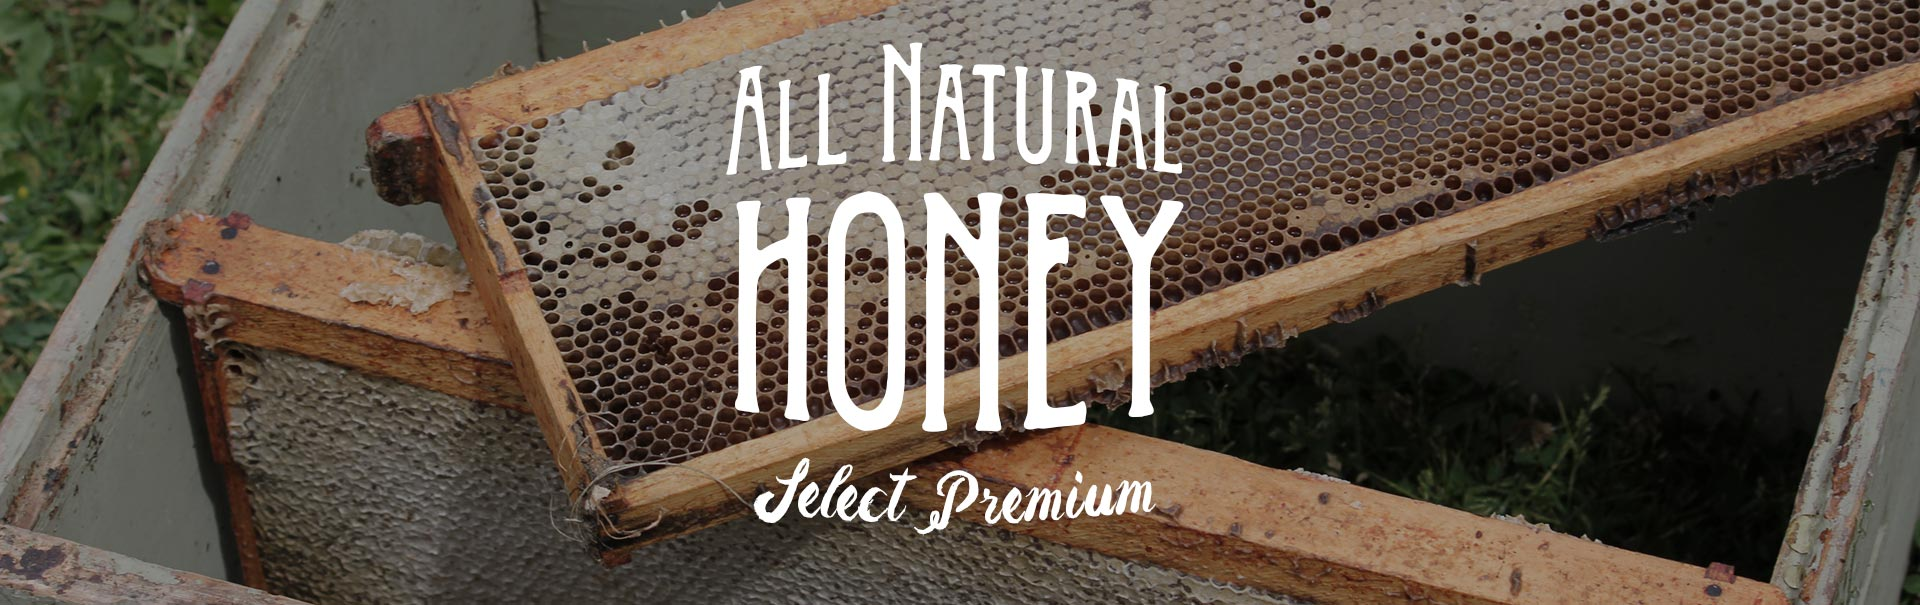 all-natural-honey-select-premium-banner